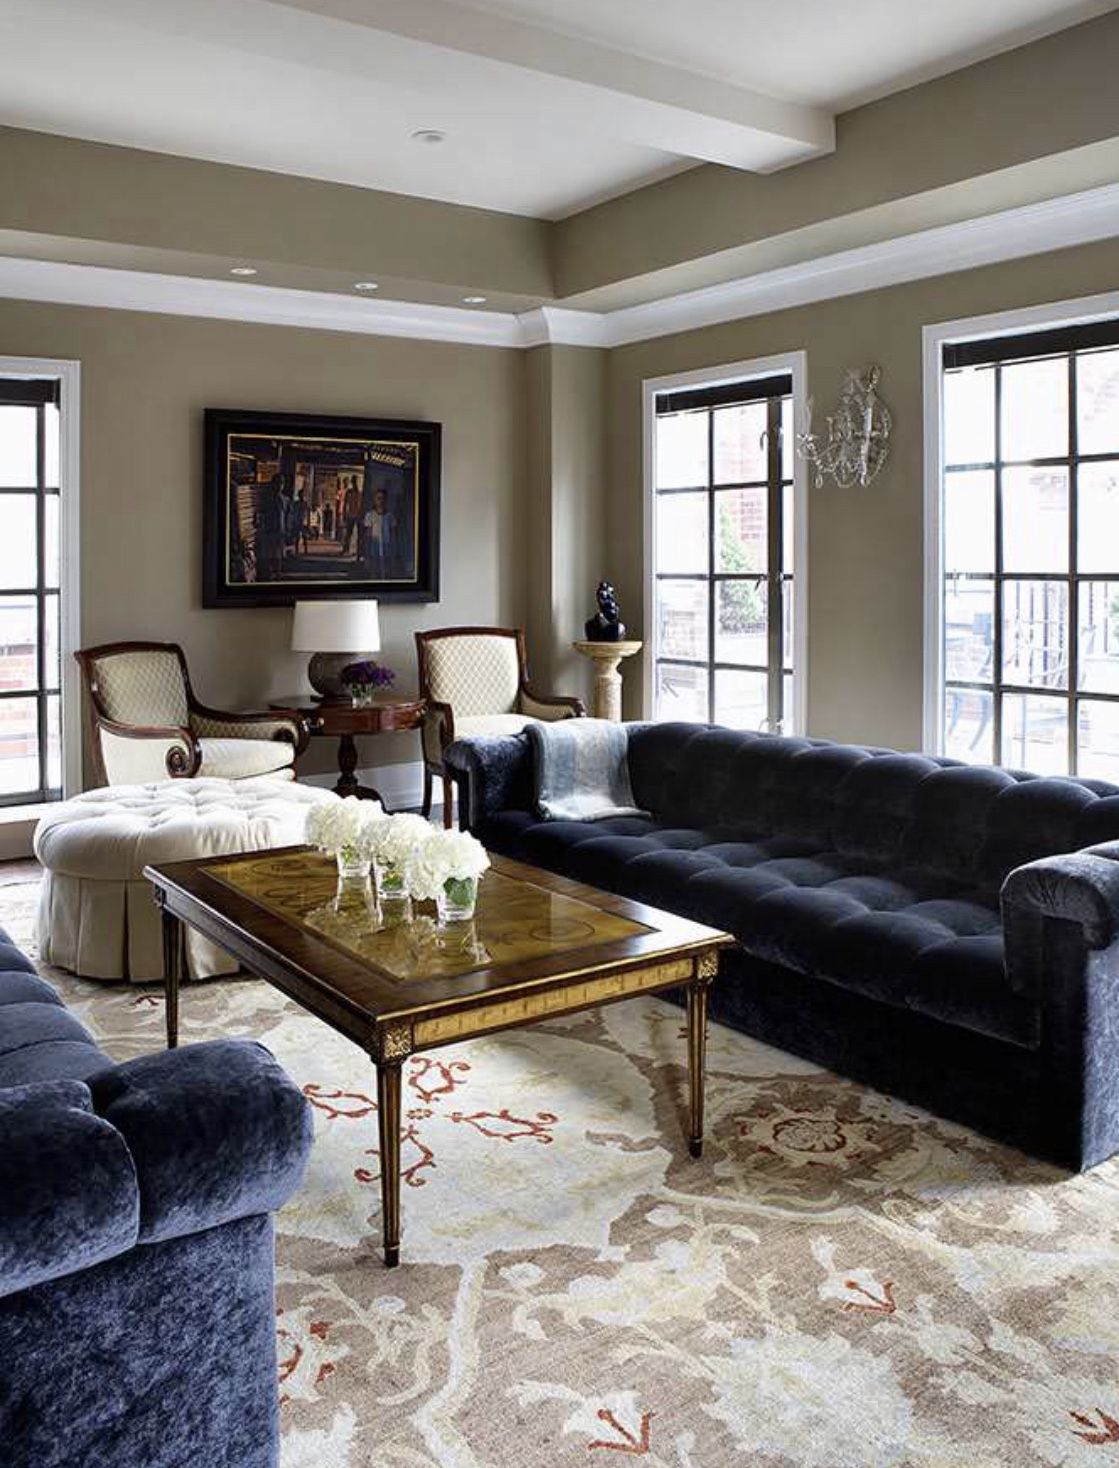 living room decor with black tufted